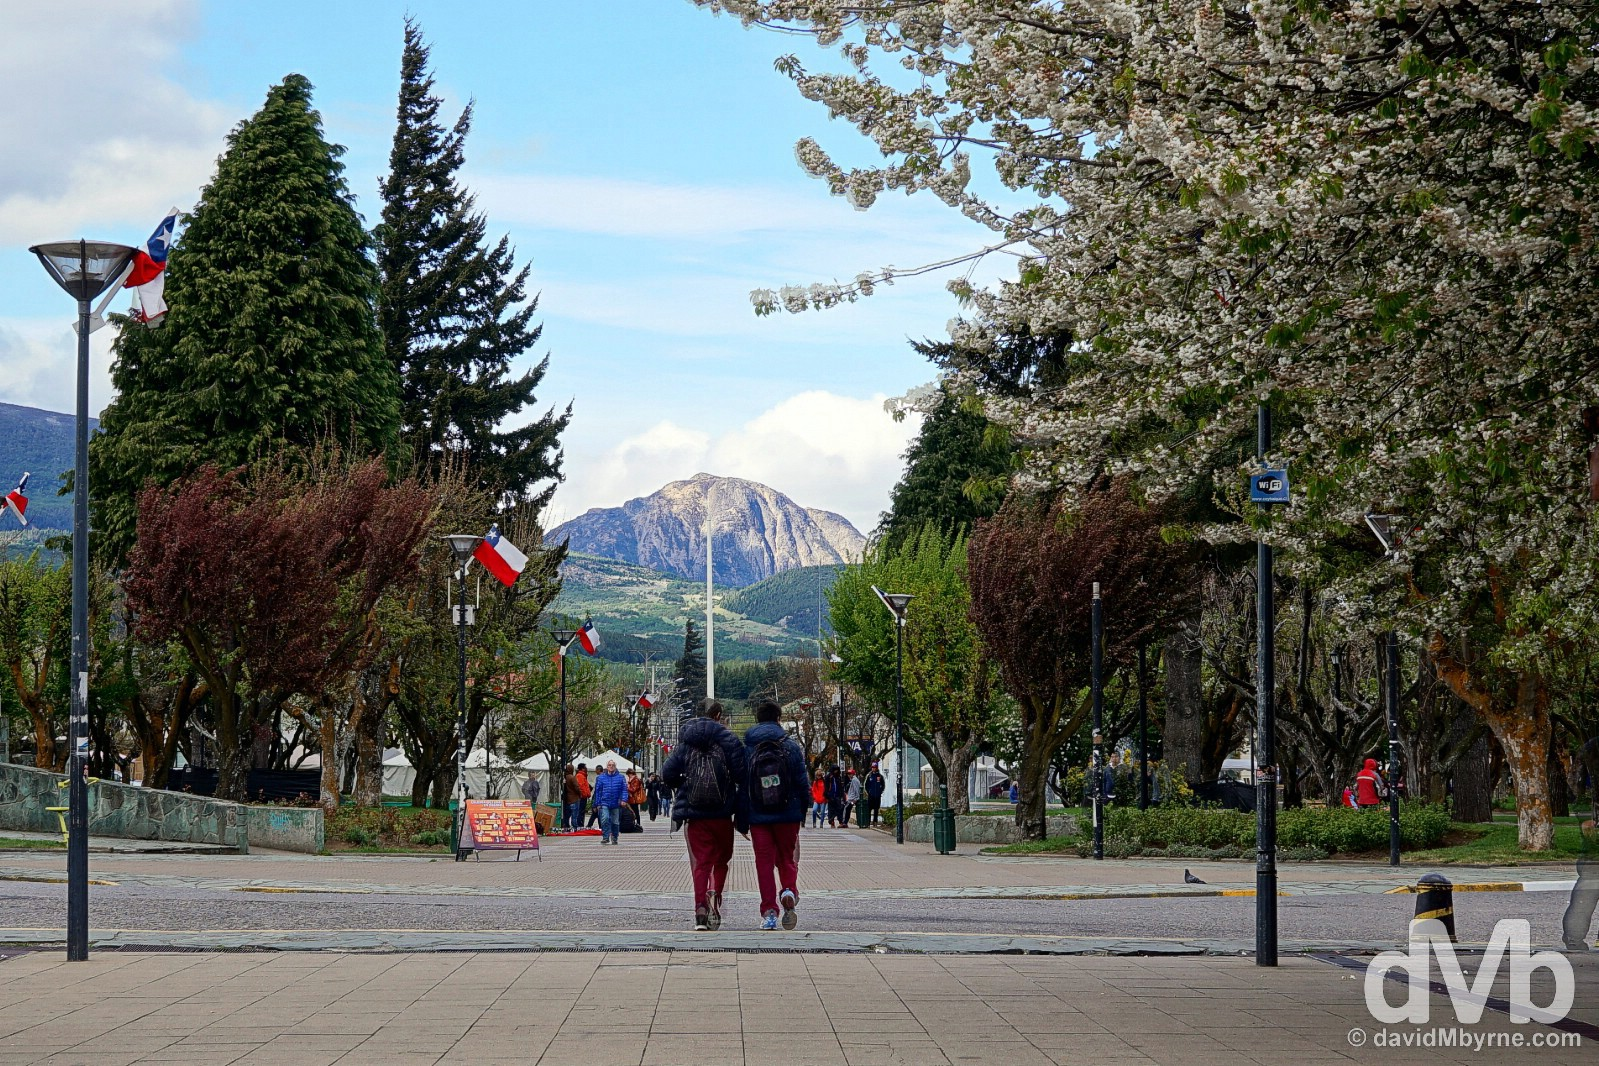 In the five-sided Plaza de Armas in Coyhaique, Aysen, Chile. October 26, 2015.